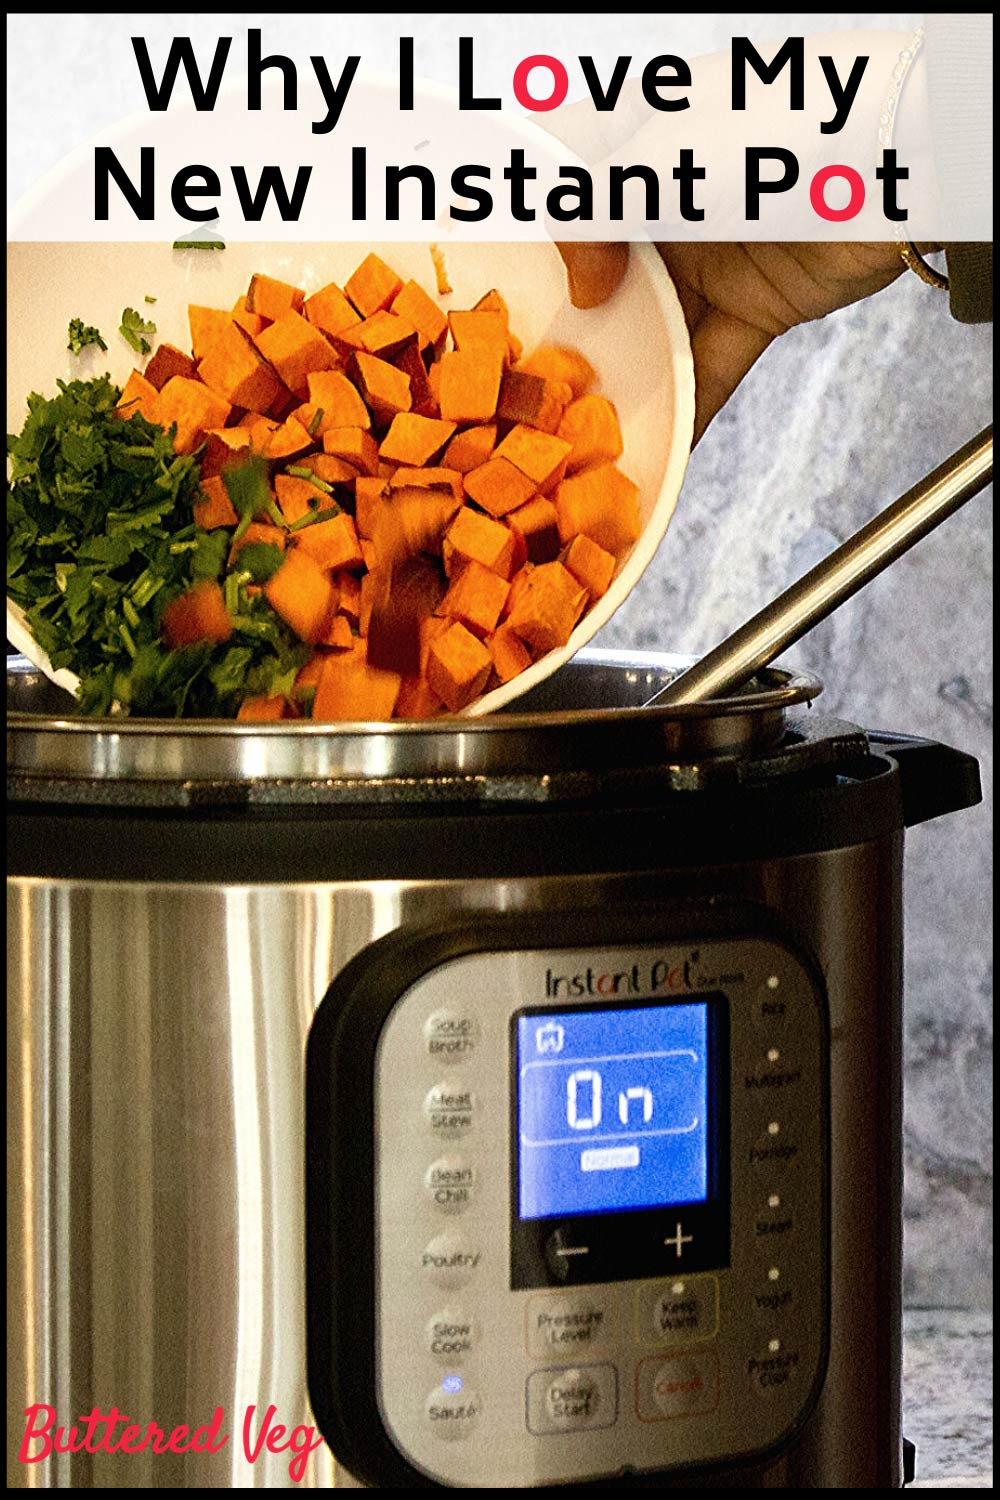 Why I Love Using My New Instant Pot